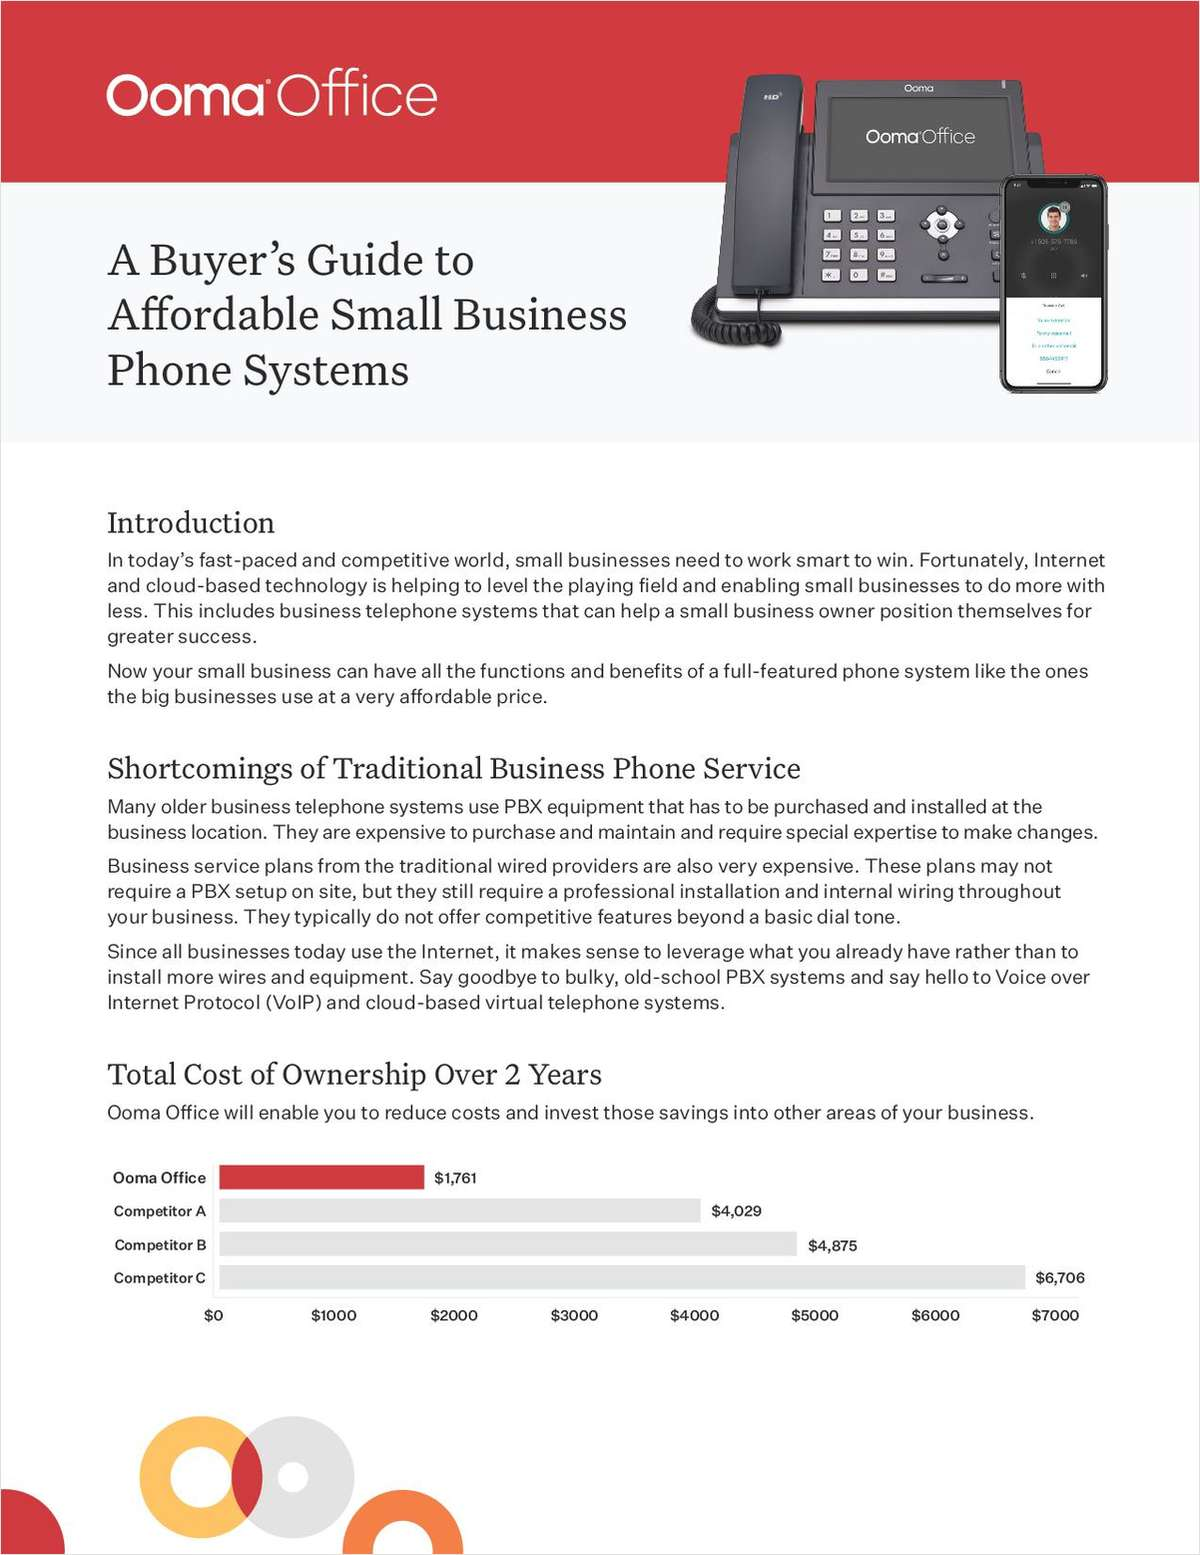 Internet and cloud-based technology is leveling the playing field. Learn how a VoIP setup can position you for greater success.